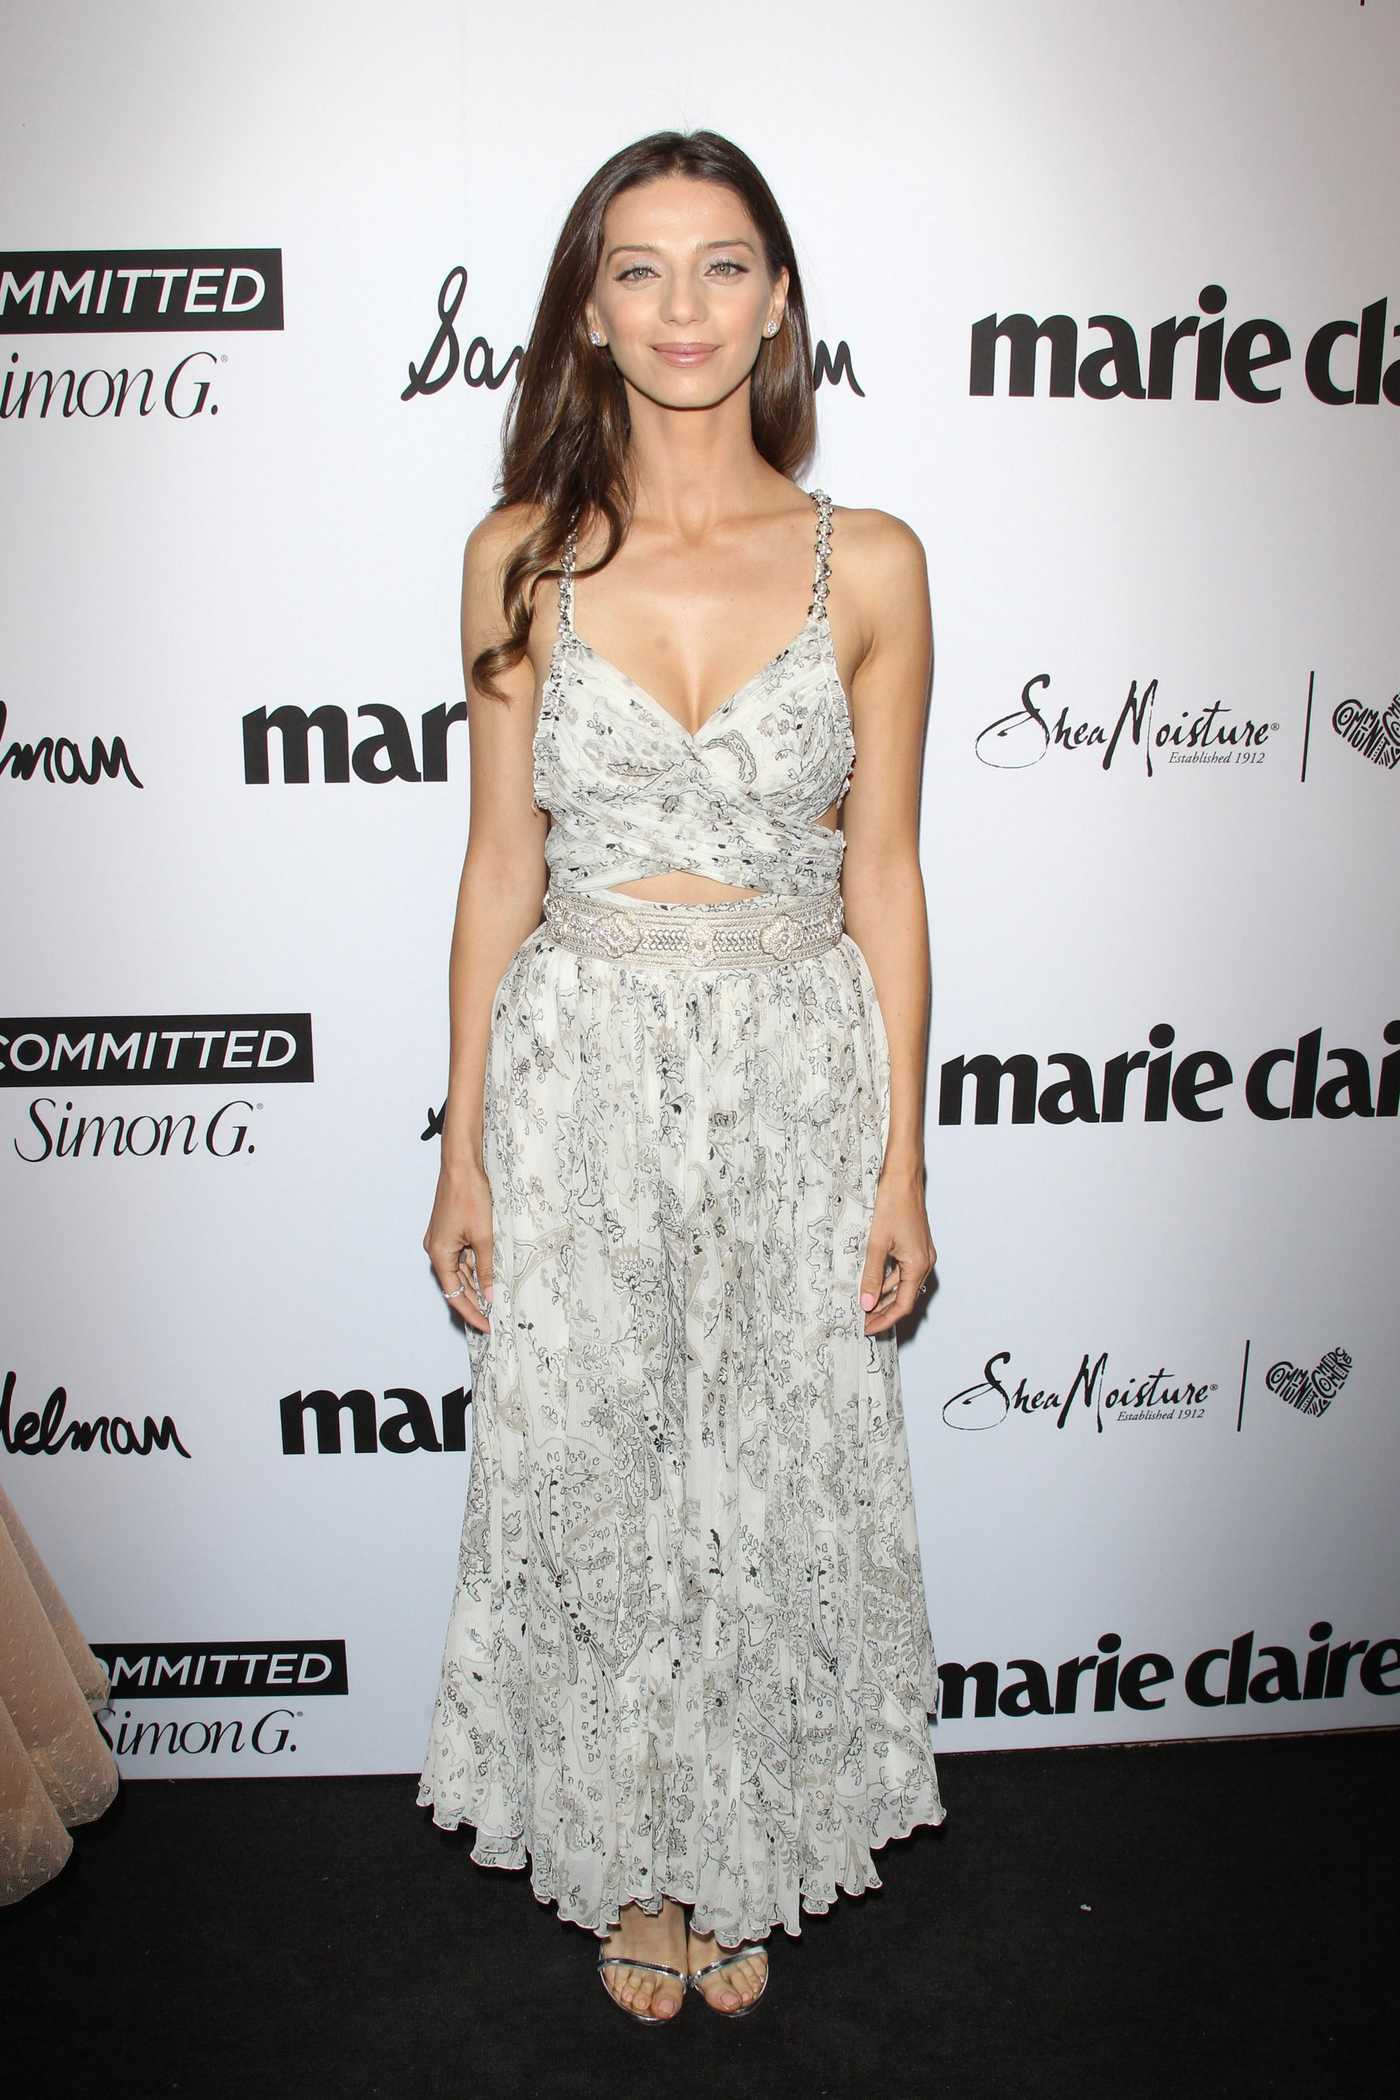 Angela Sarafyan at the 5th Annual Marie Claire Fresh Faces Party in Los Angeles 04/27/2018